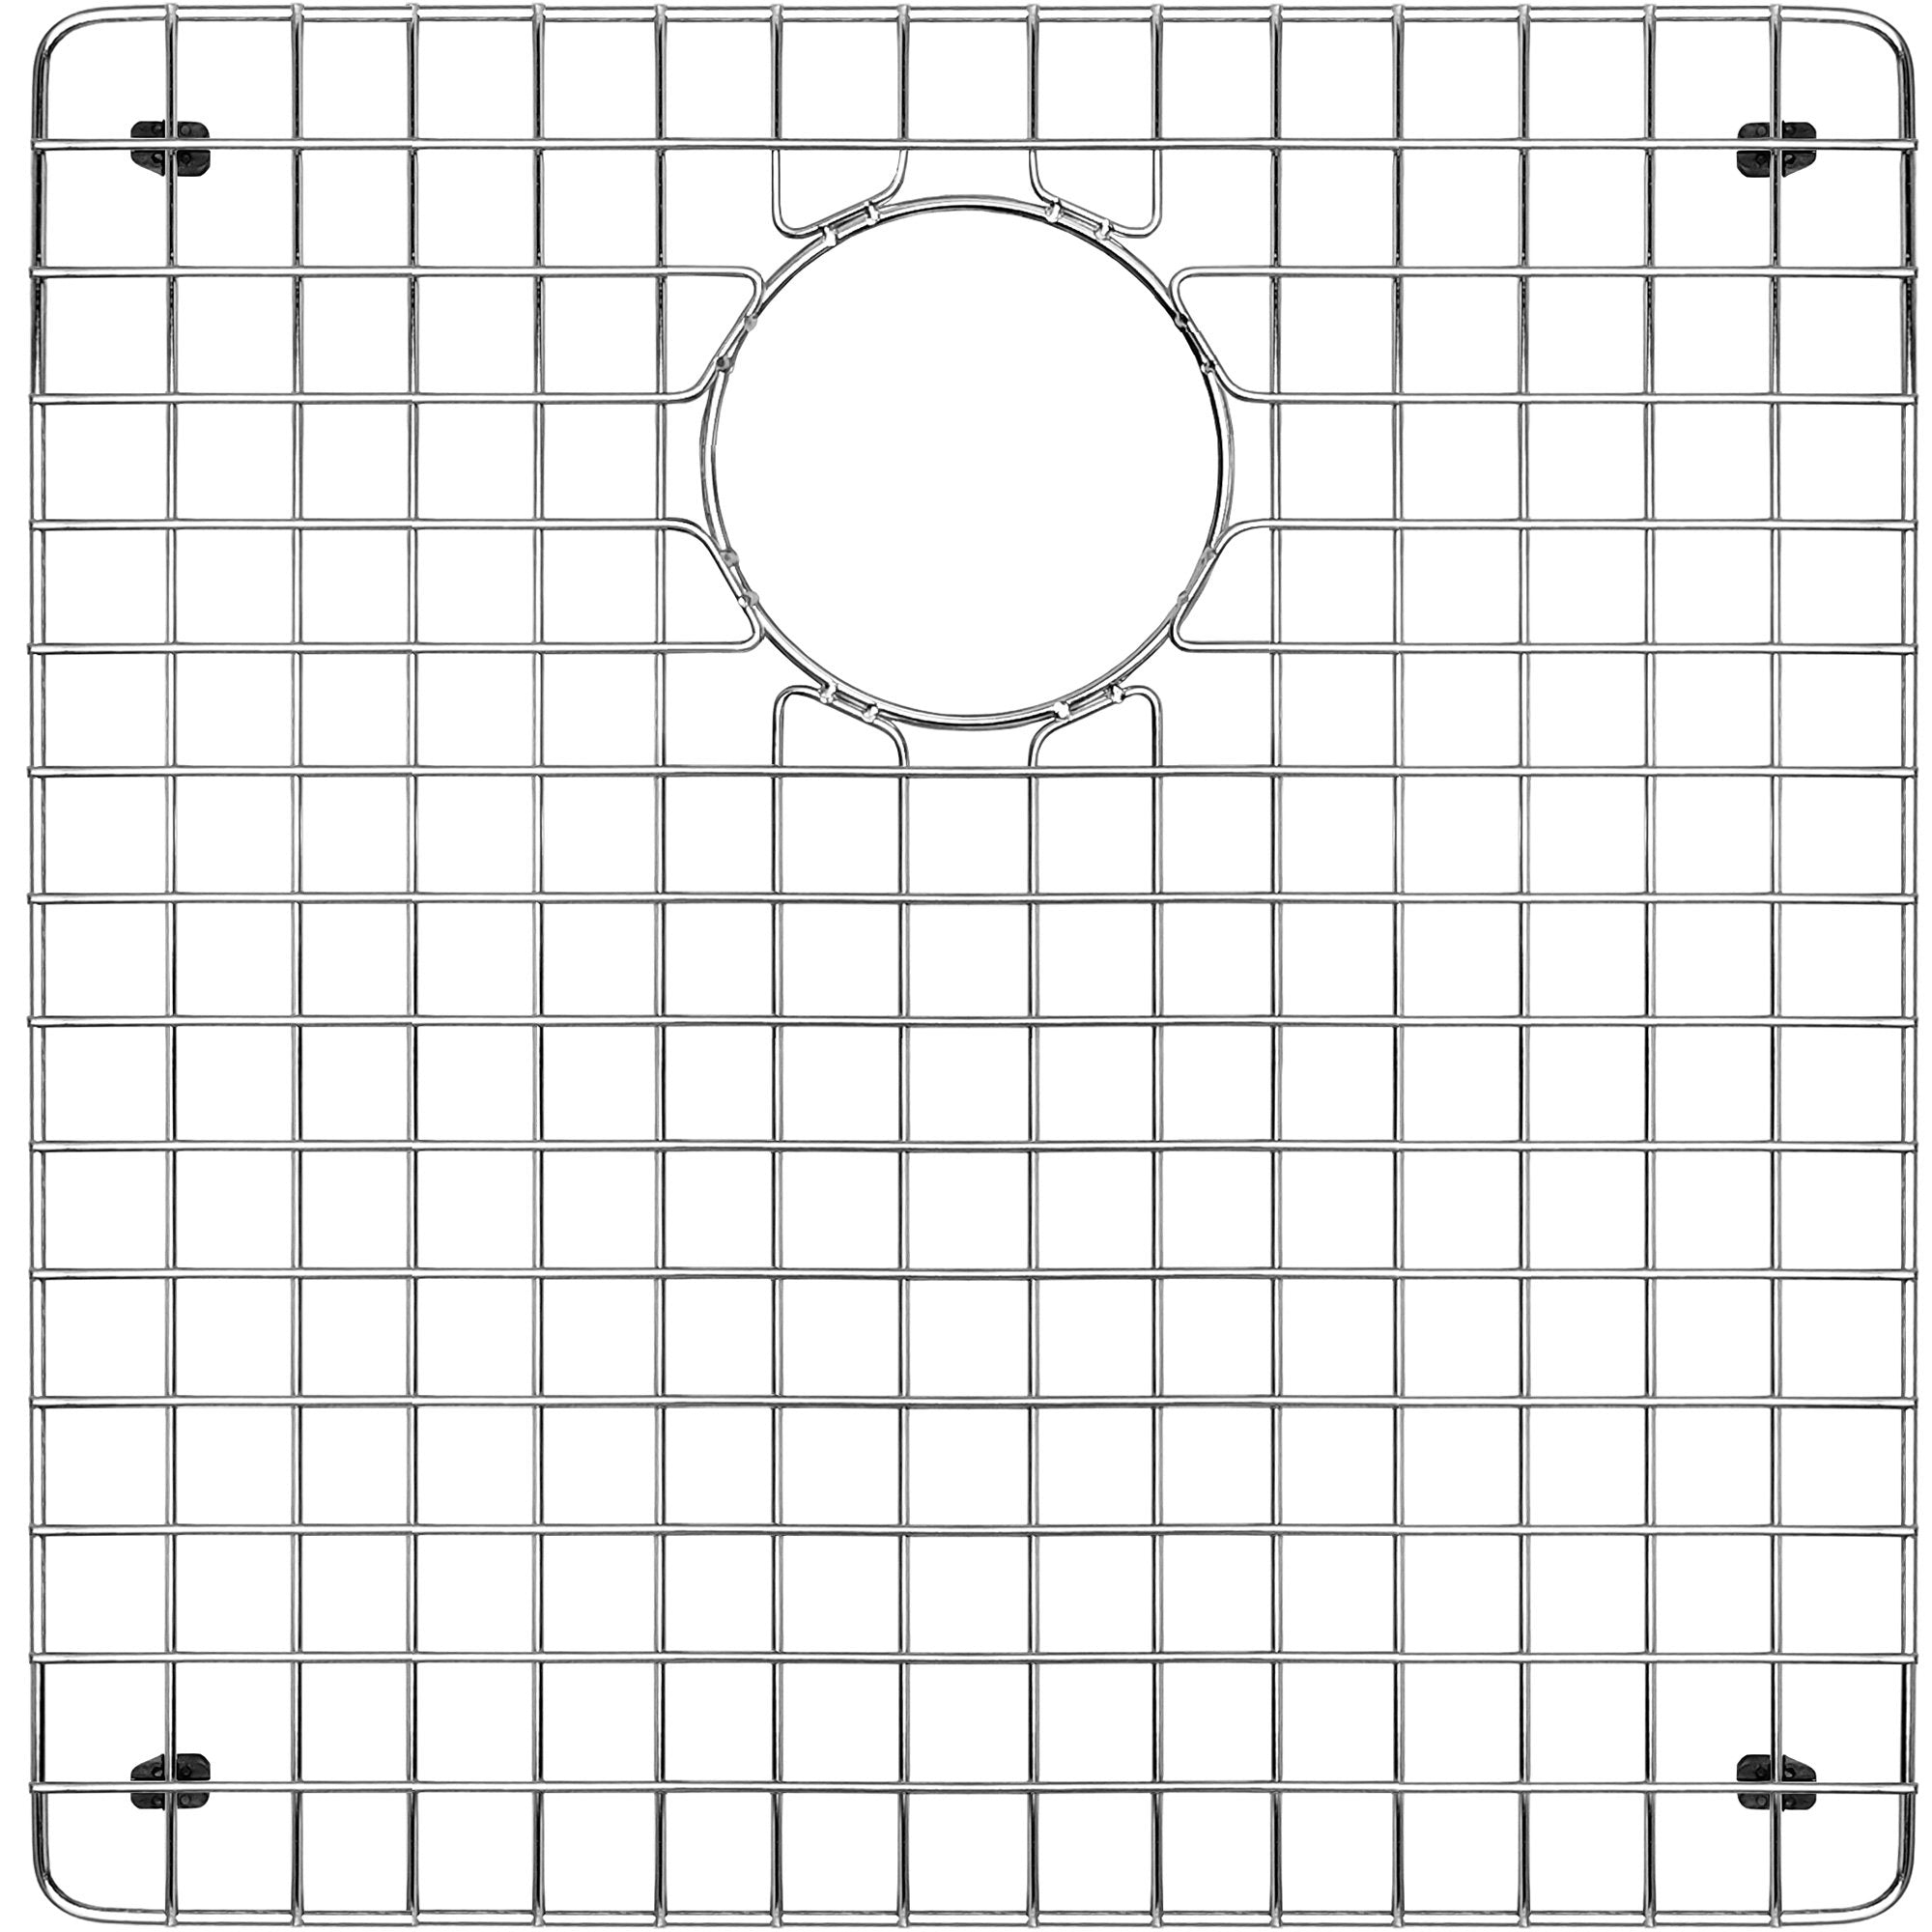 Stainless Steel Kitchen Sink Grid For Noah's Sink Model WHNCM3720EQ